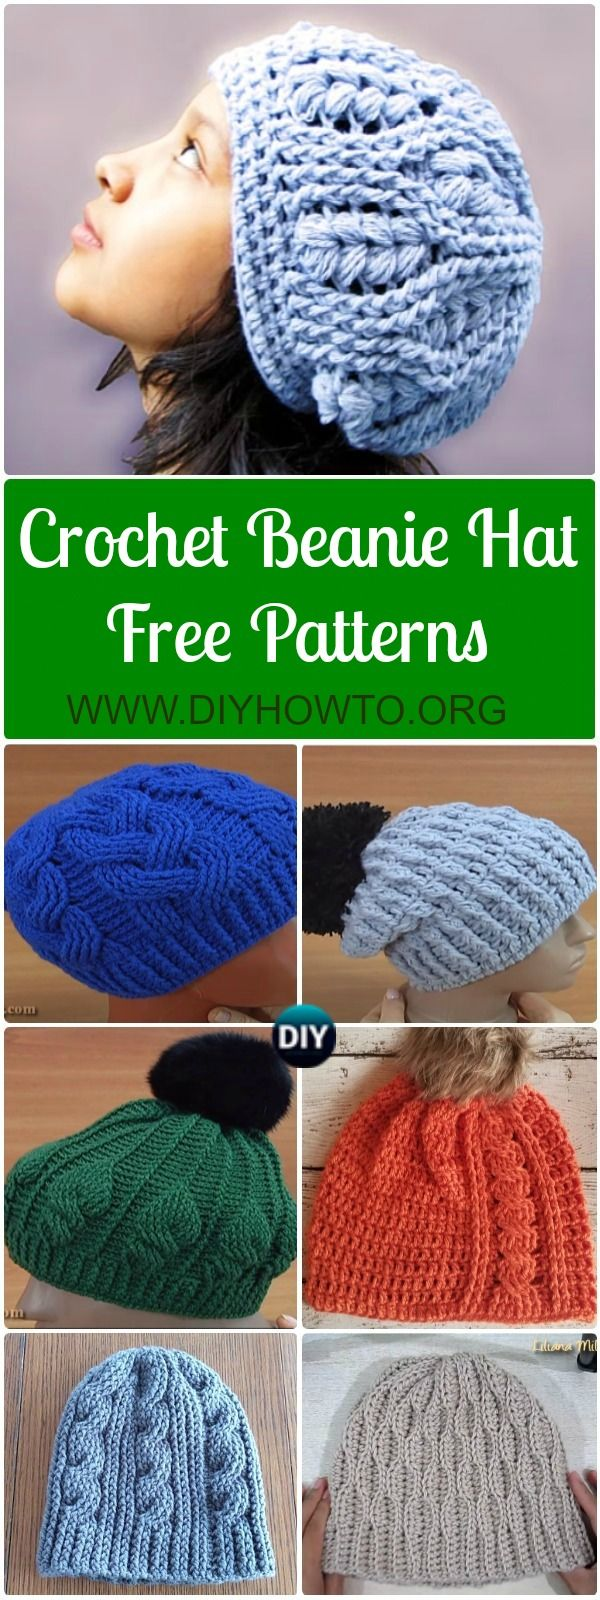 Collection of Crochet Cable Hat Free Patterns: Crochet Cable Beanie Hat, Adult Hat, Textured Hat, Pom Pom hat, Winter hat